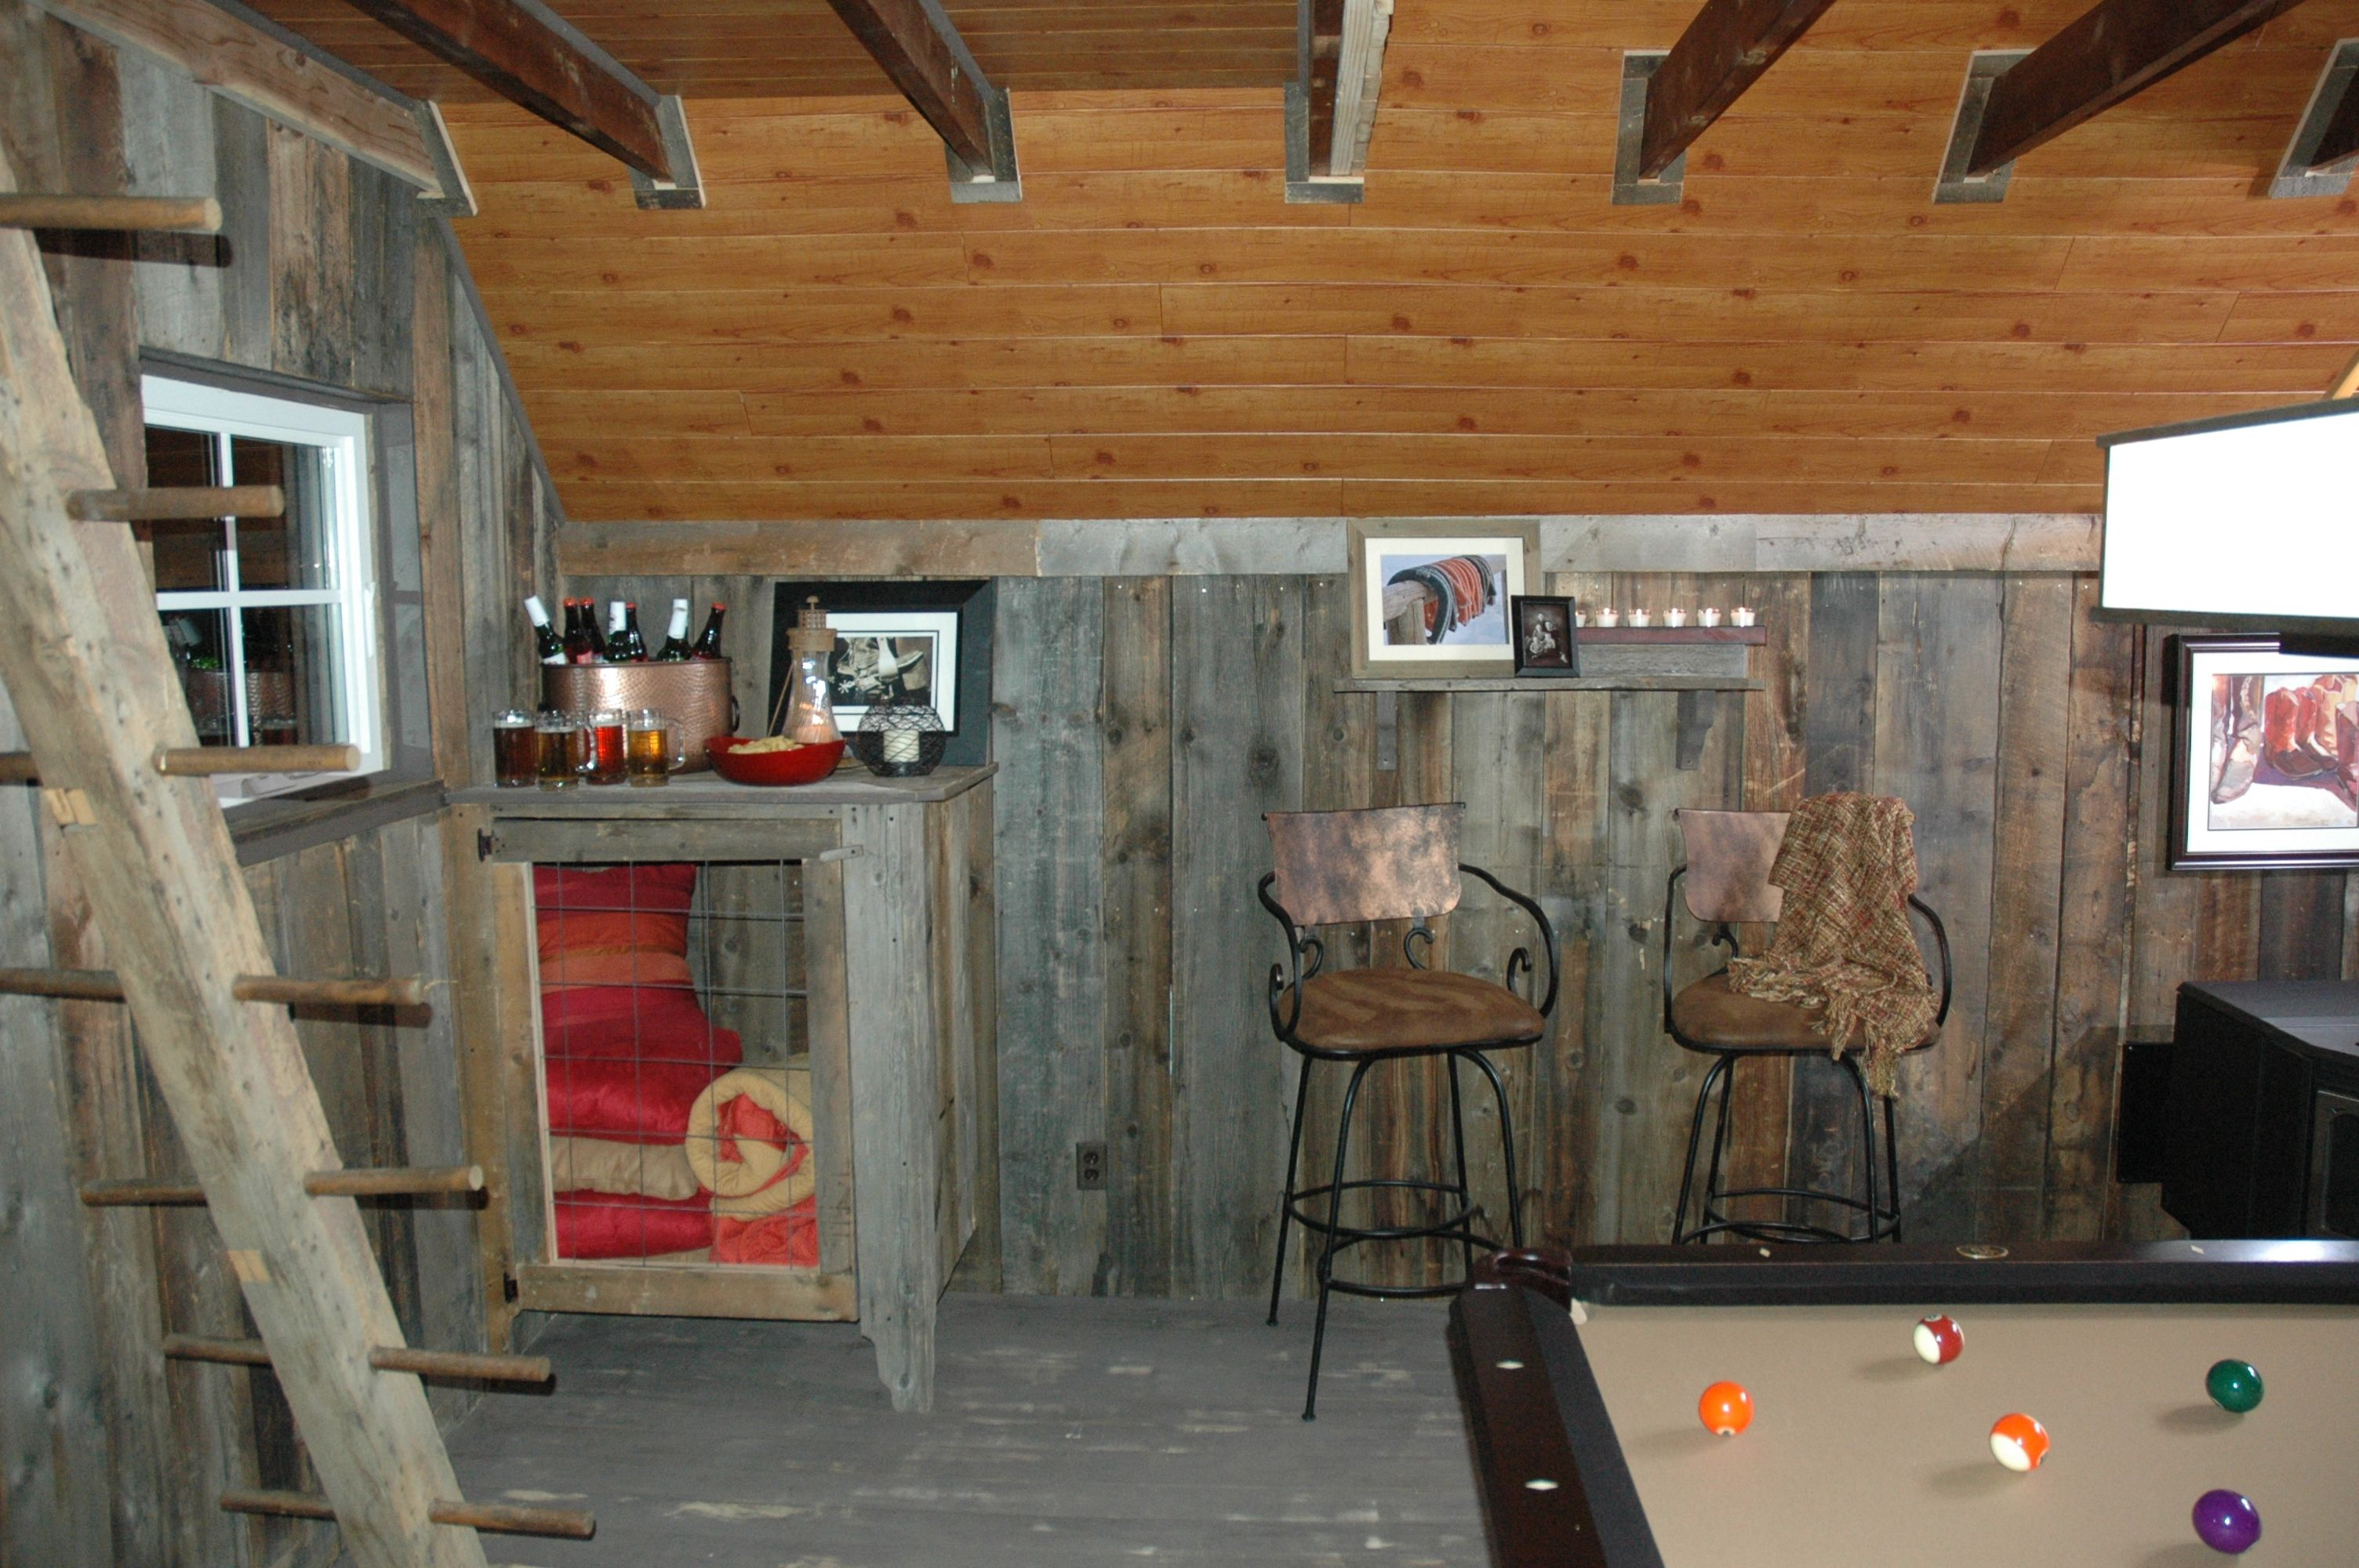 Man Cave Cabin Ideas : Wood wall ideas sons like to play. they made the blanket chest